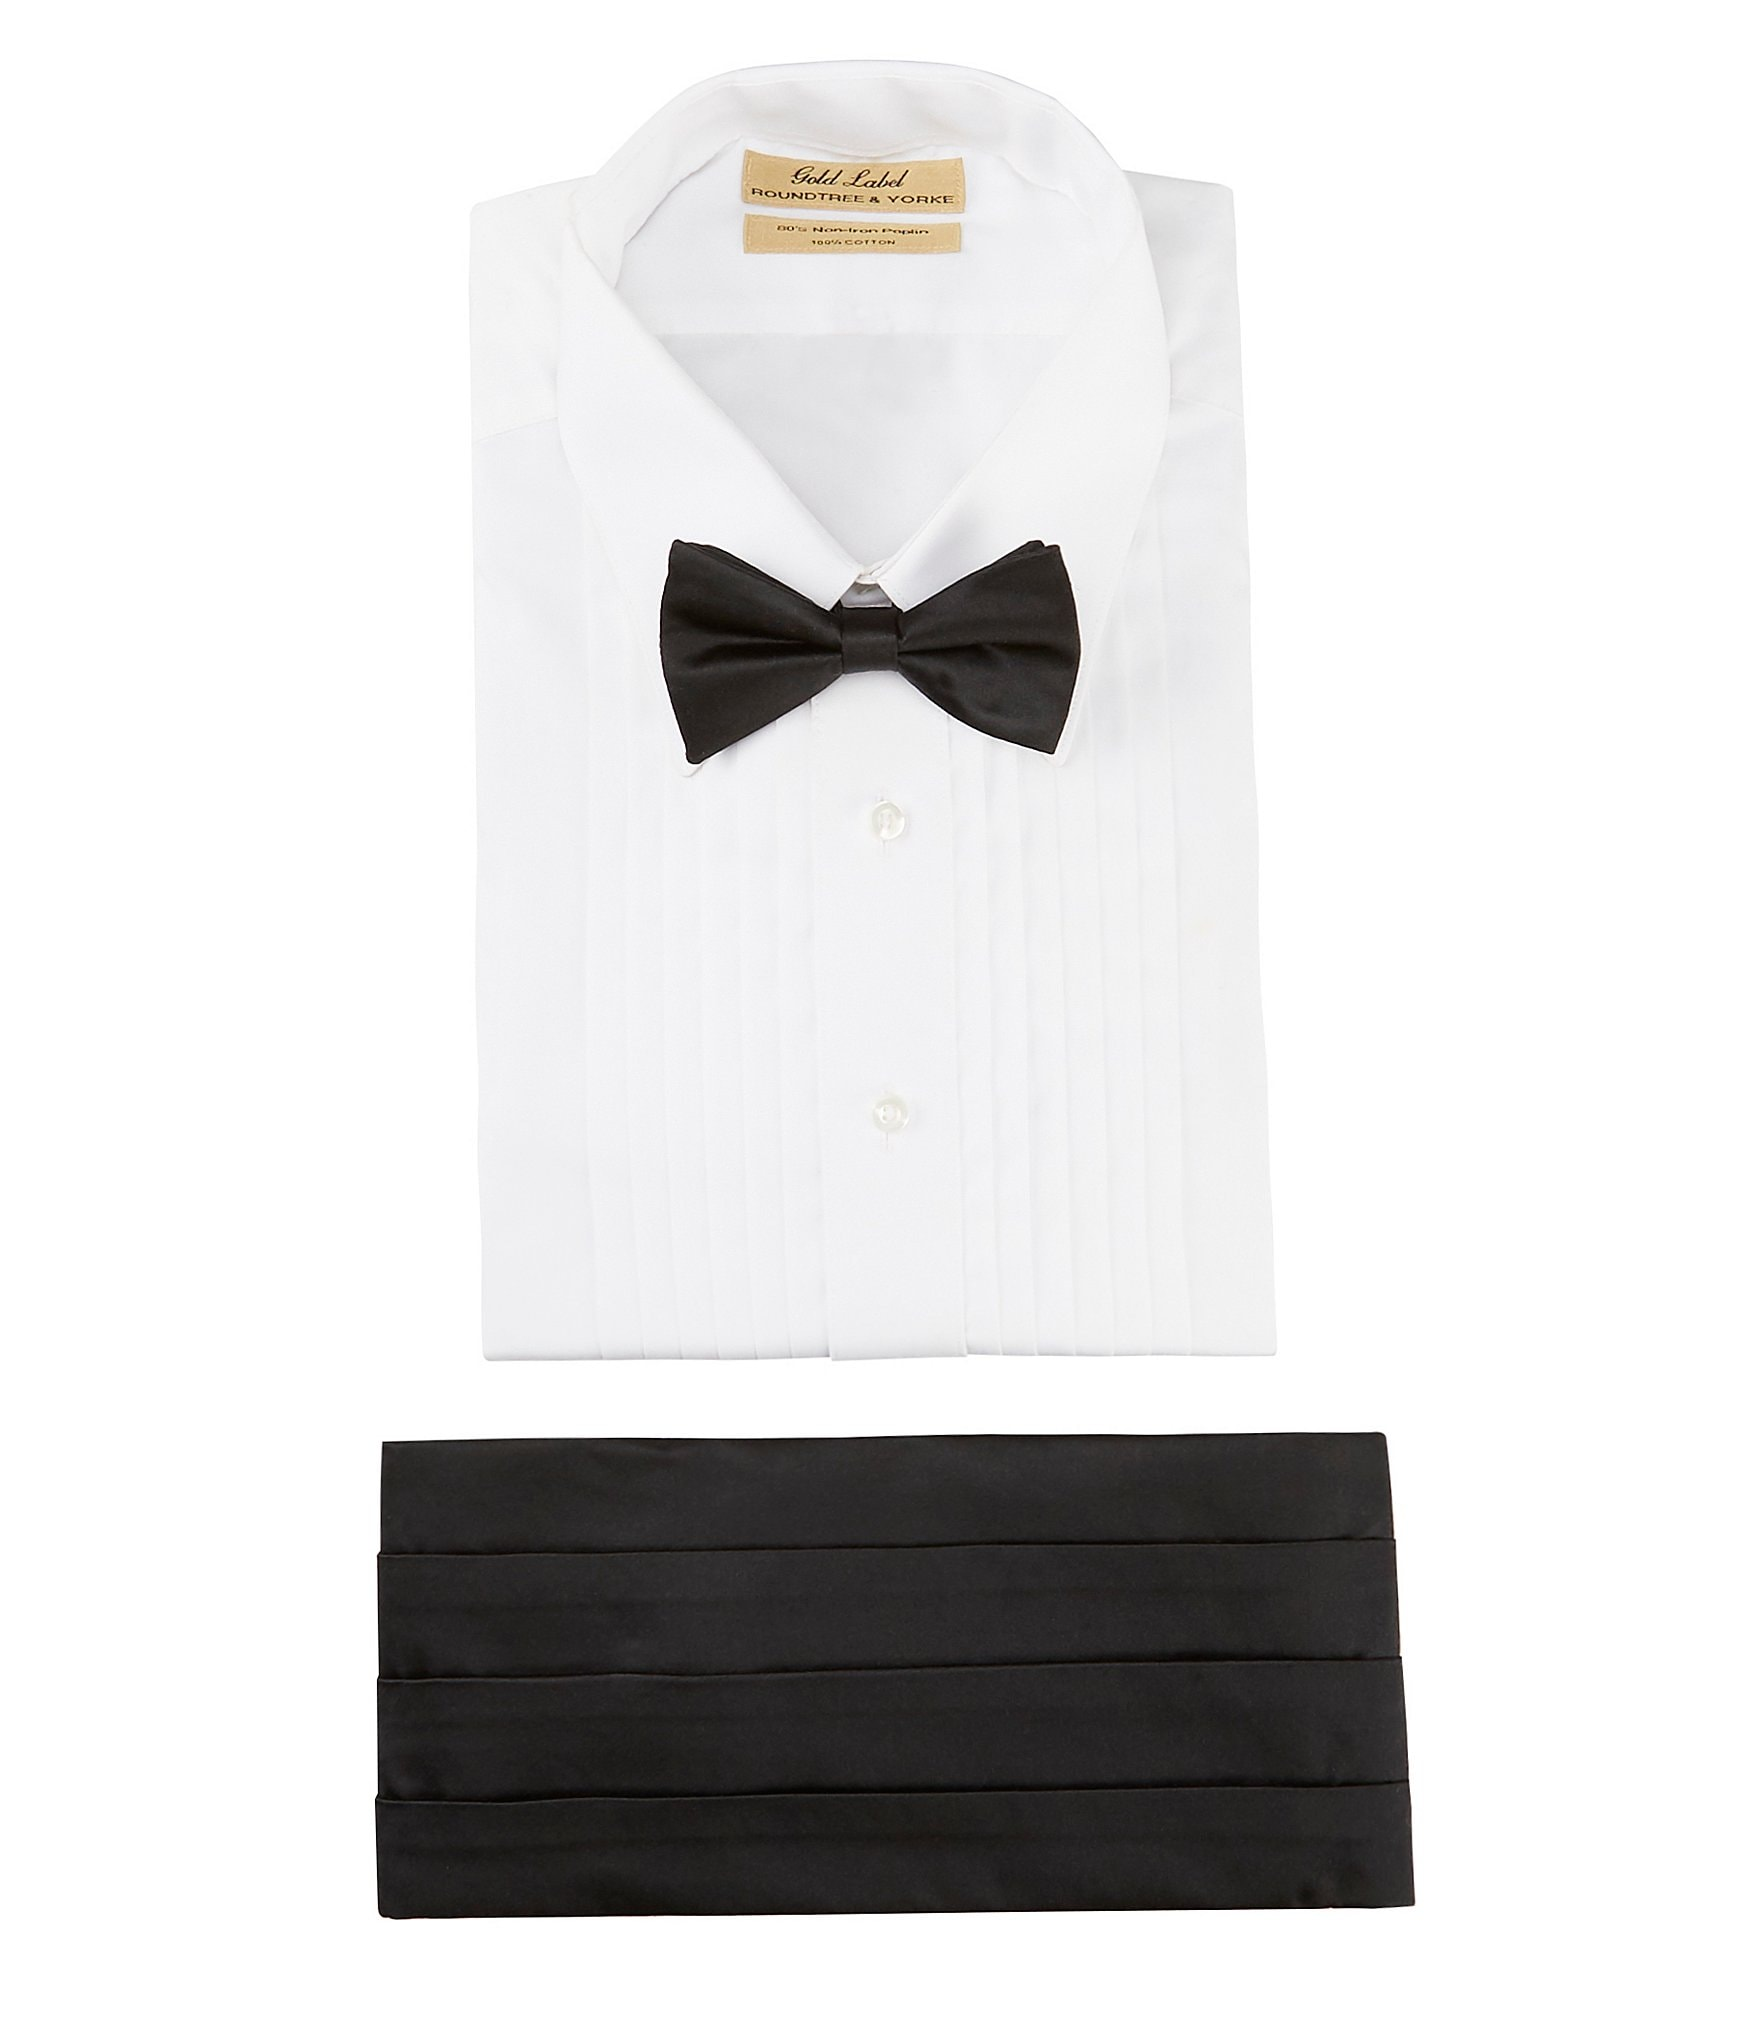 Silk Men/'s Bow Tie cranberry cream and gold colorblock plaid  LIMITED EDITION  Groomsmen  Ringbearer